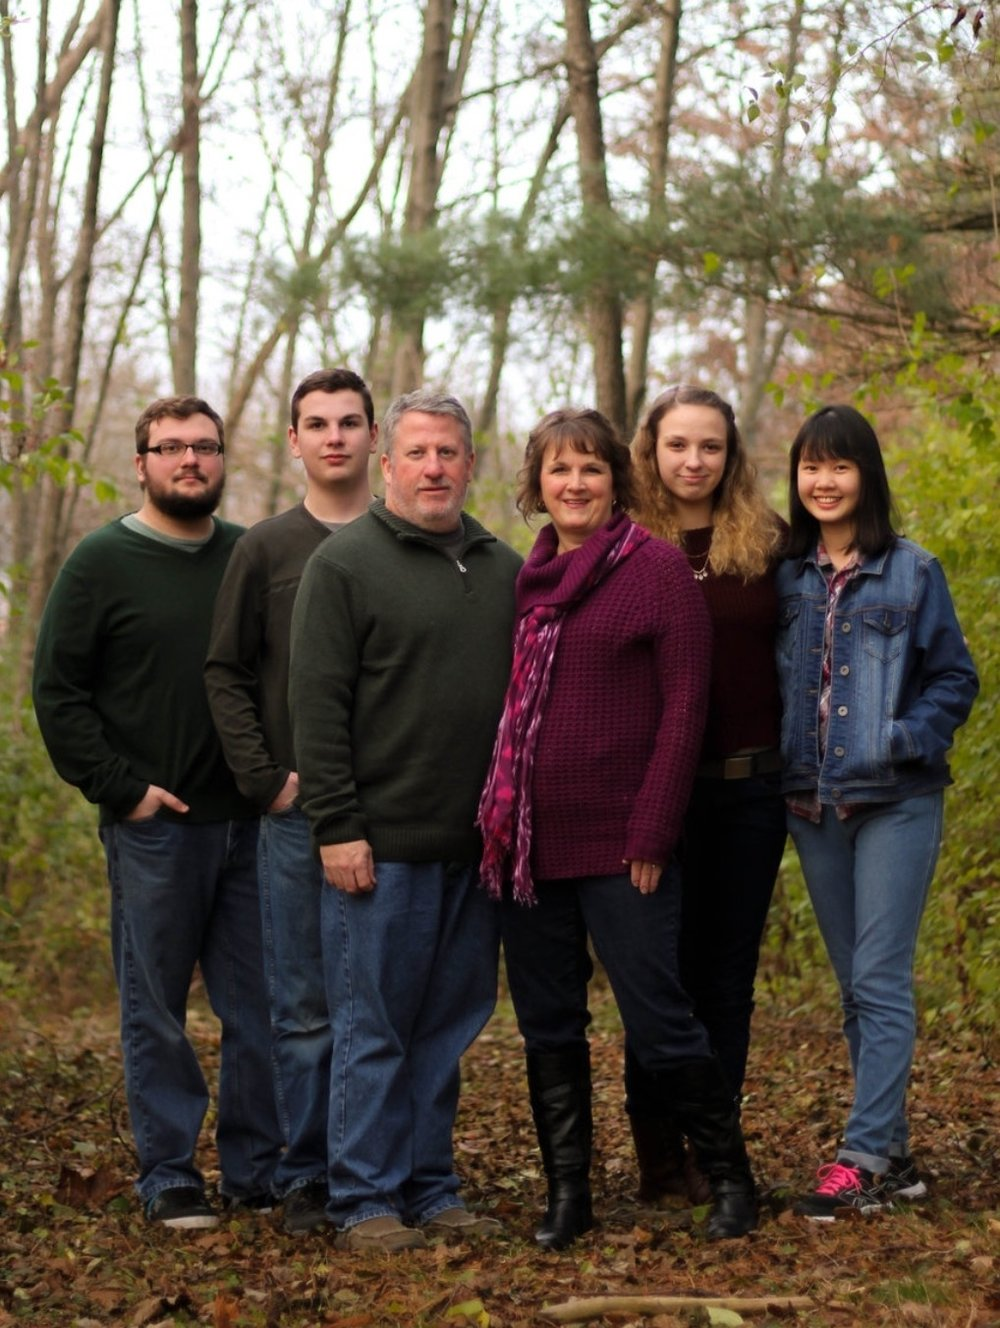 "Tammy (and Steve) Burk   ""I have home schooled for ten years and have always considered the most important component is my children's hearts for Christ. My children include a young adult and two teens. Seeing the fruits emerge has been extremely rewarding.  I have been a part of this group of Christ-loving home educators for several years and know they also have a passion for their children's spiritual and academic growth.  The chapel time and the academic classes all point to the purpose to fulfill their callings to serve Christ.  I have also had the opportunity to teach some of the classes and it has been rewarding for me as well.  We spent this current year hosting a foreign exchange student and the enriching experience has fortified our commitment to listen to His will."""